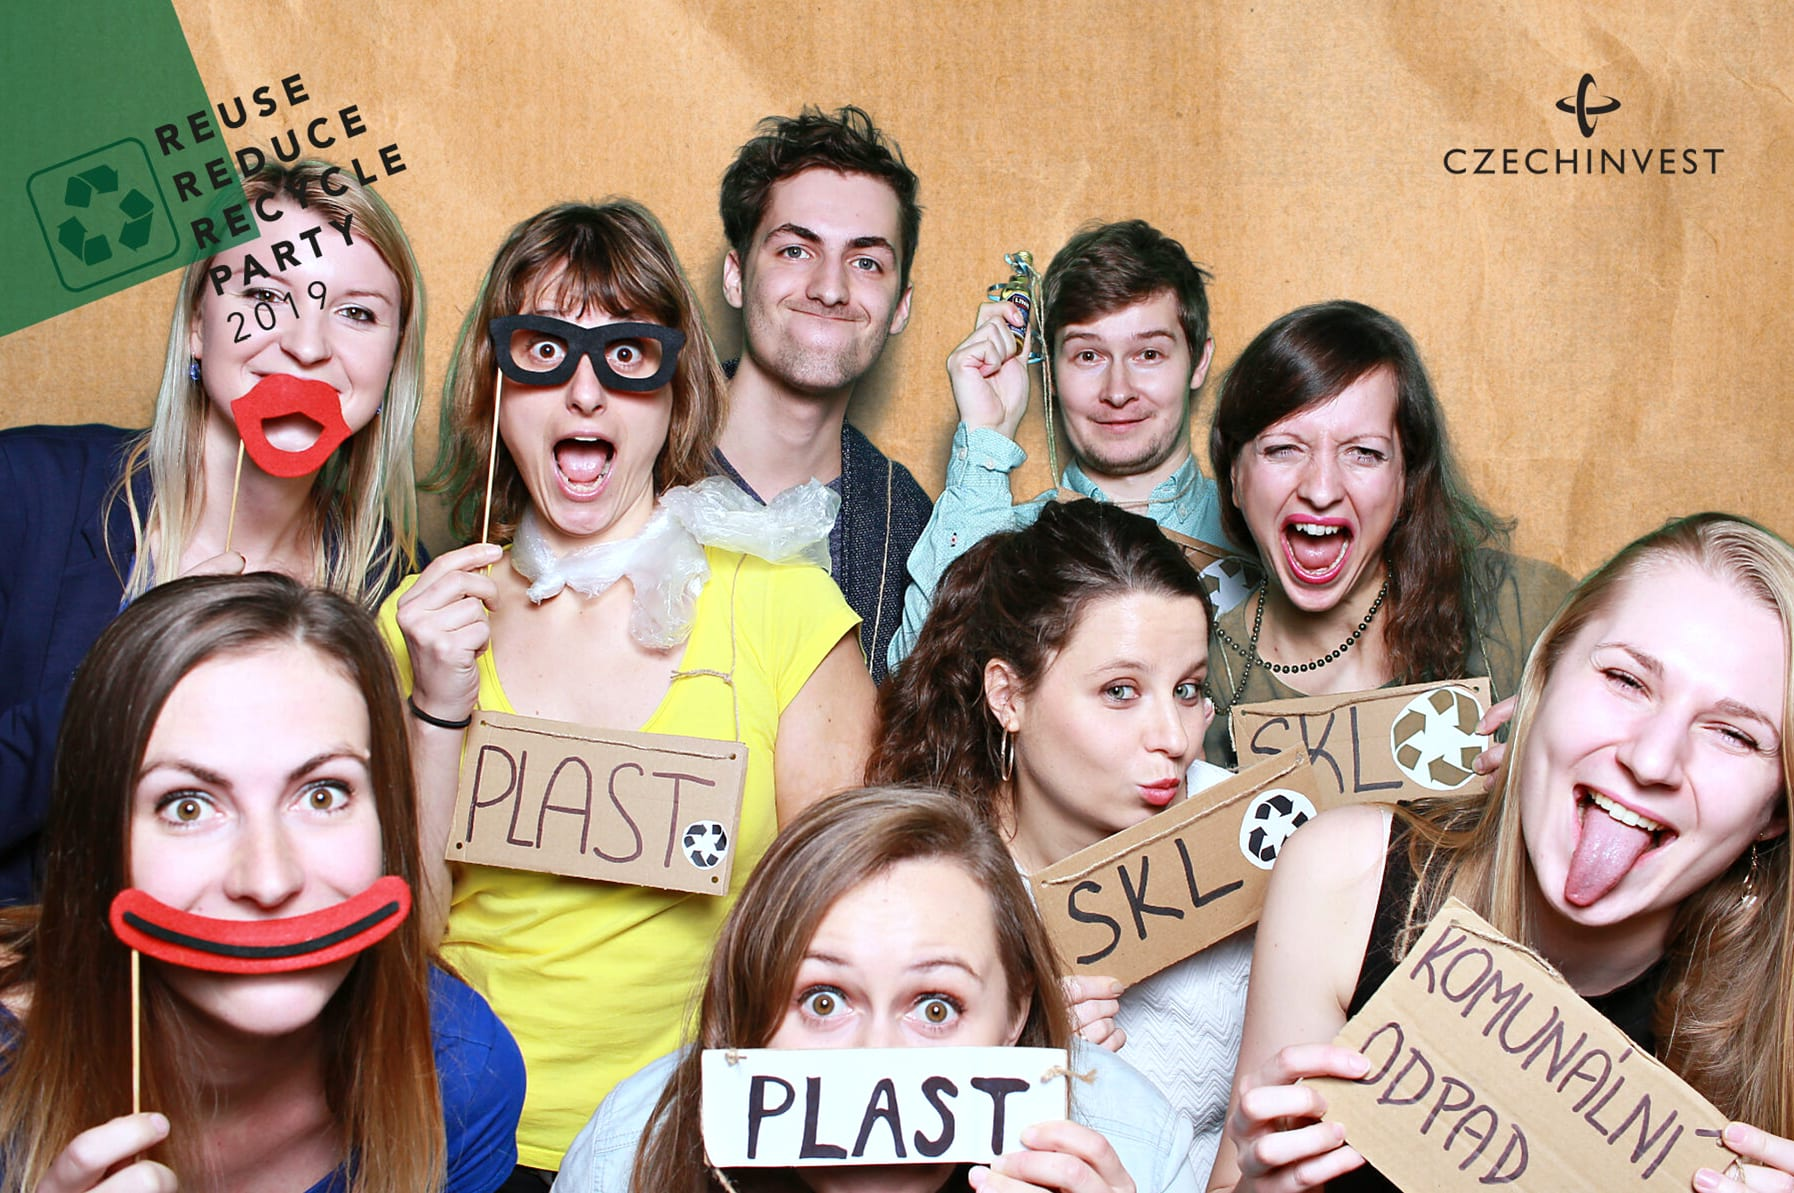 fotokoutek-reuse-reduce-recycle-party-10-1-2019-564049